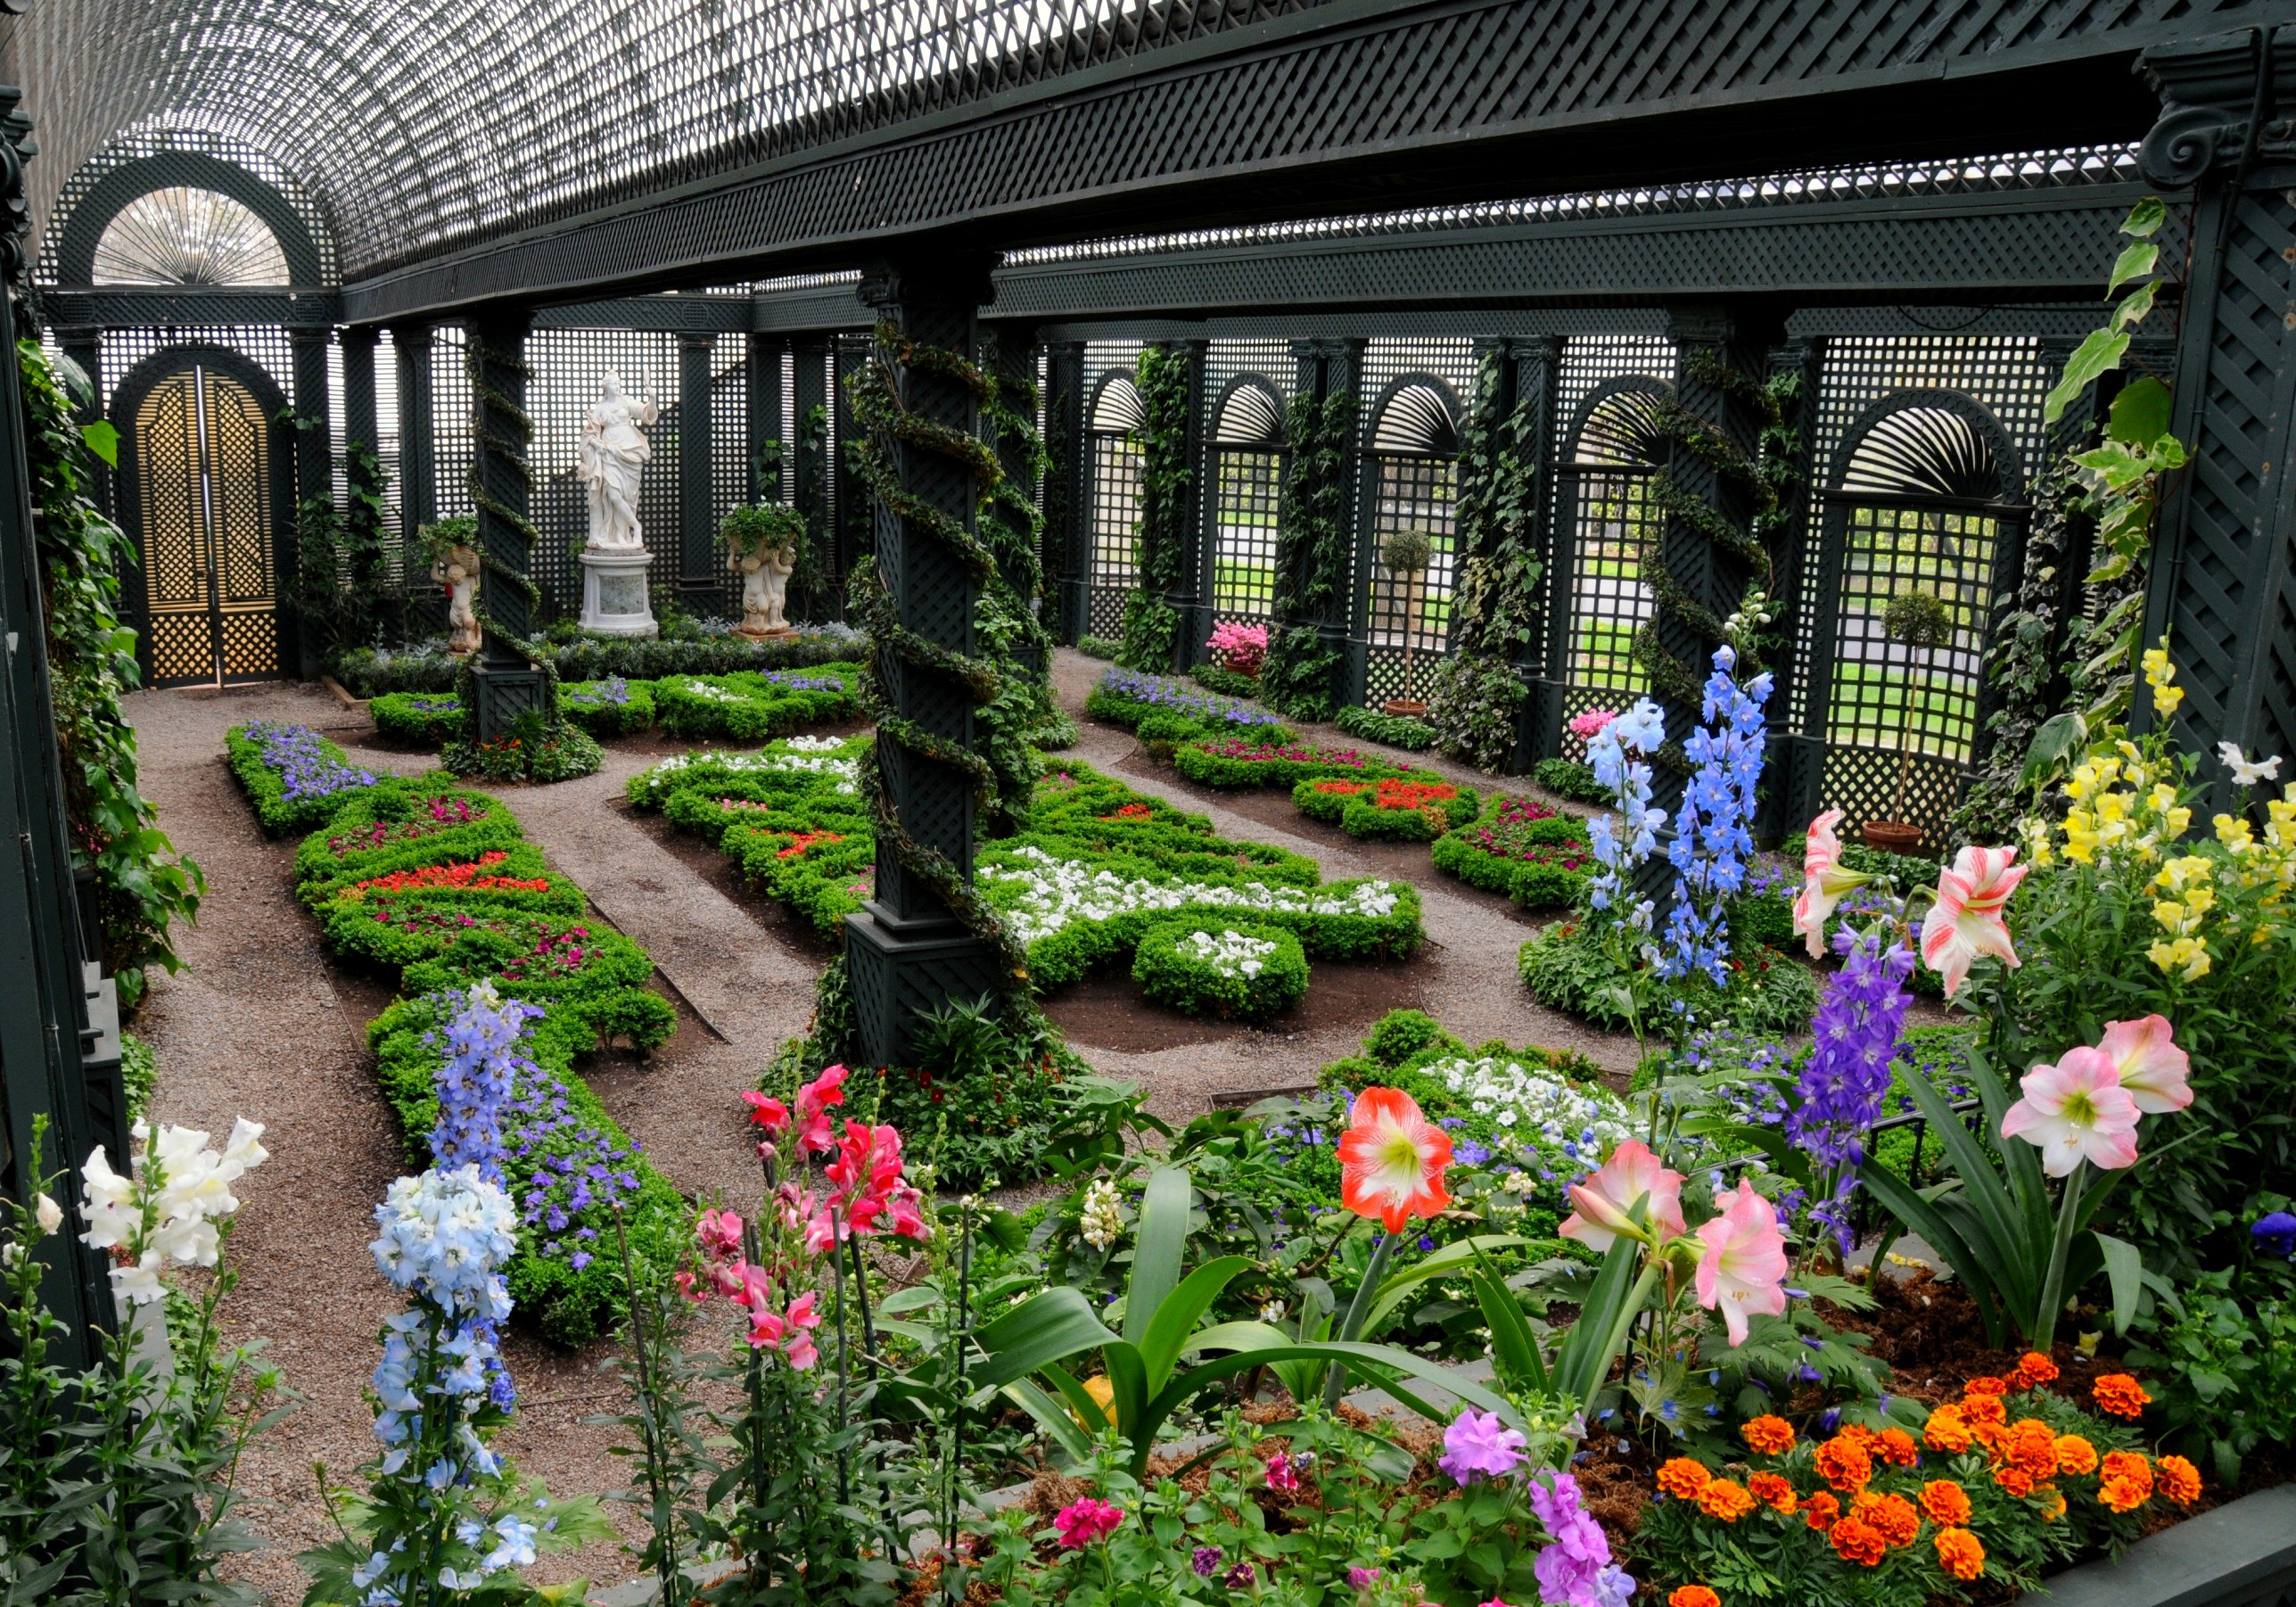 File:French Garden at Duke Gardens.jpg